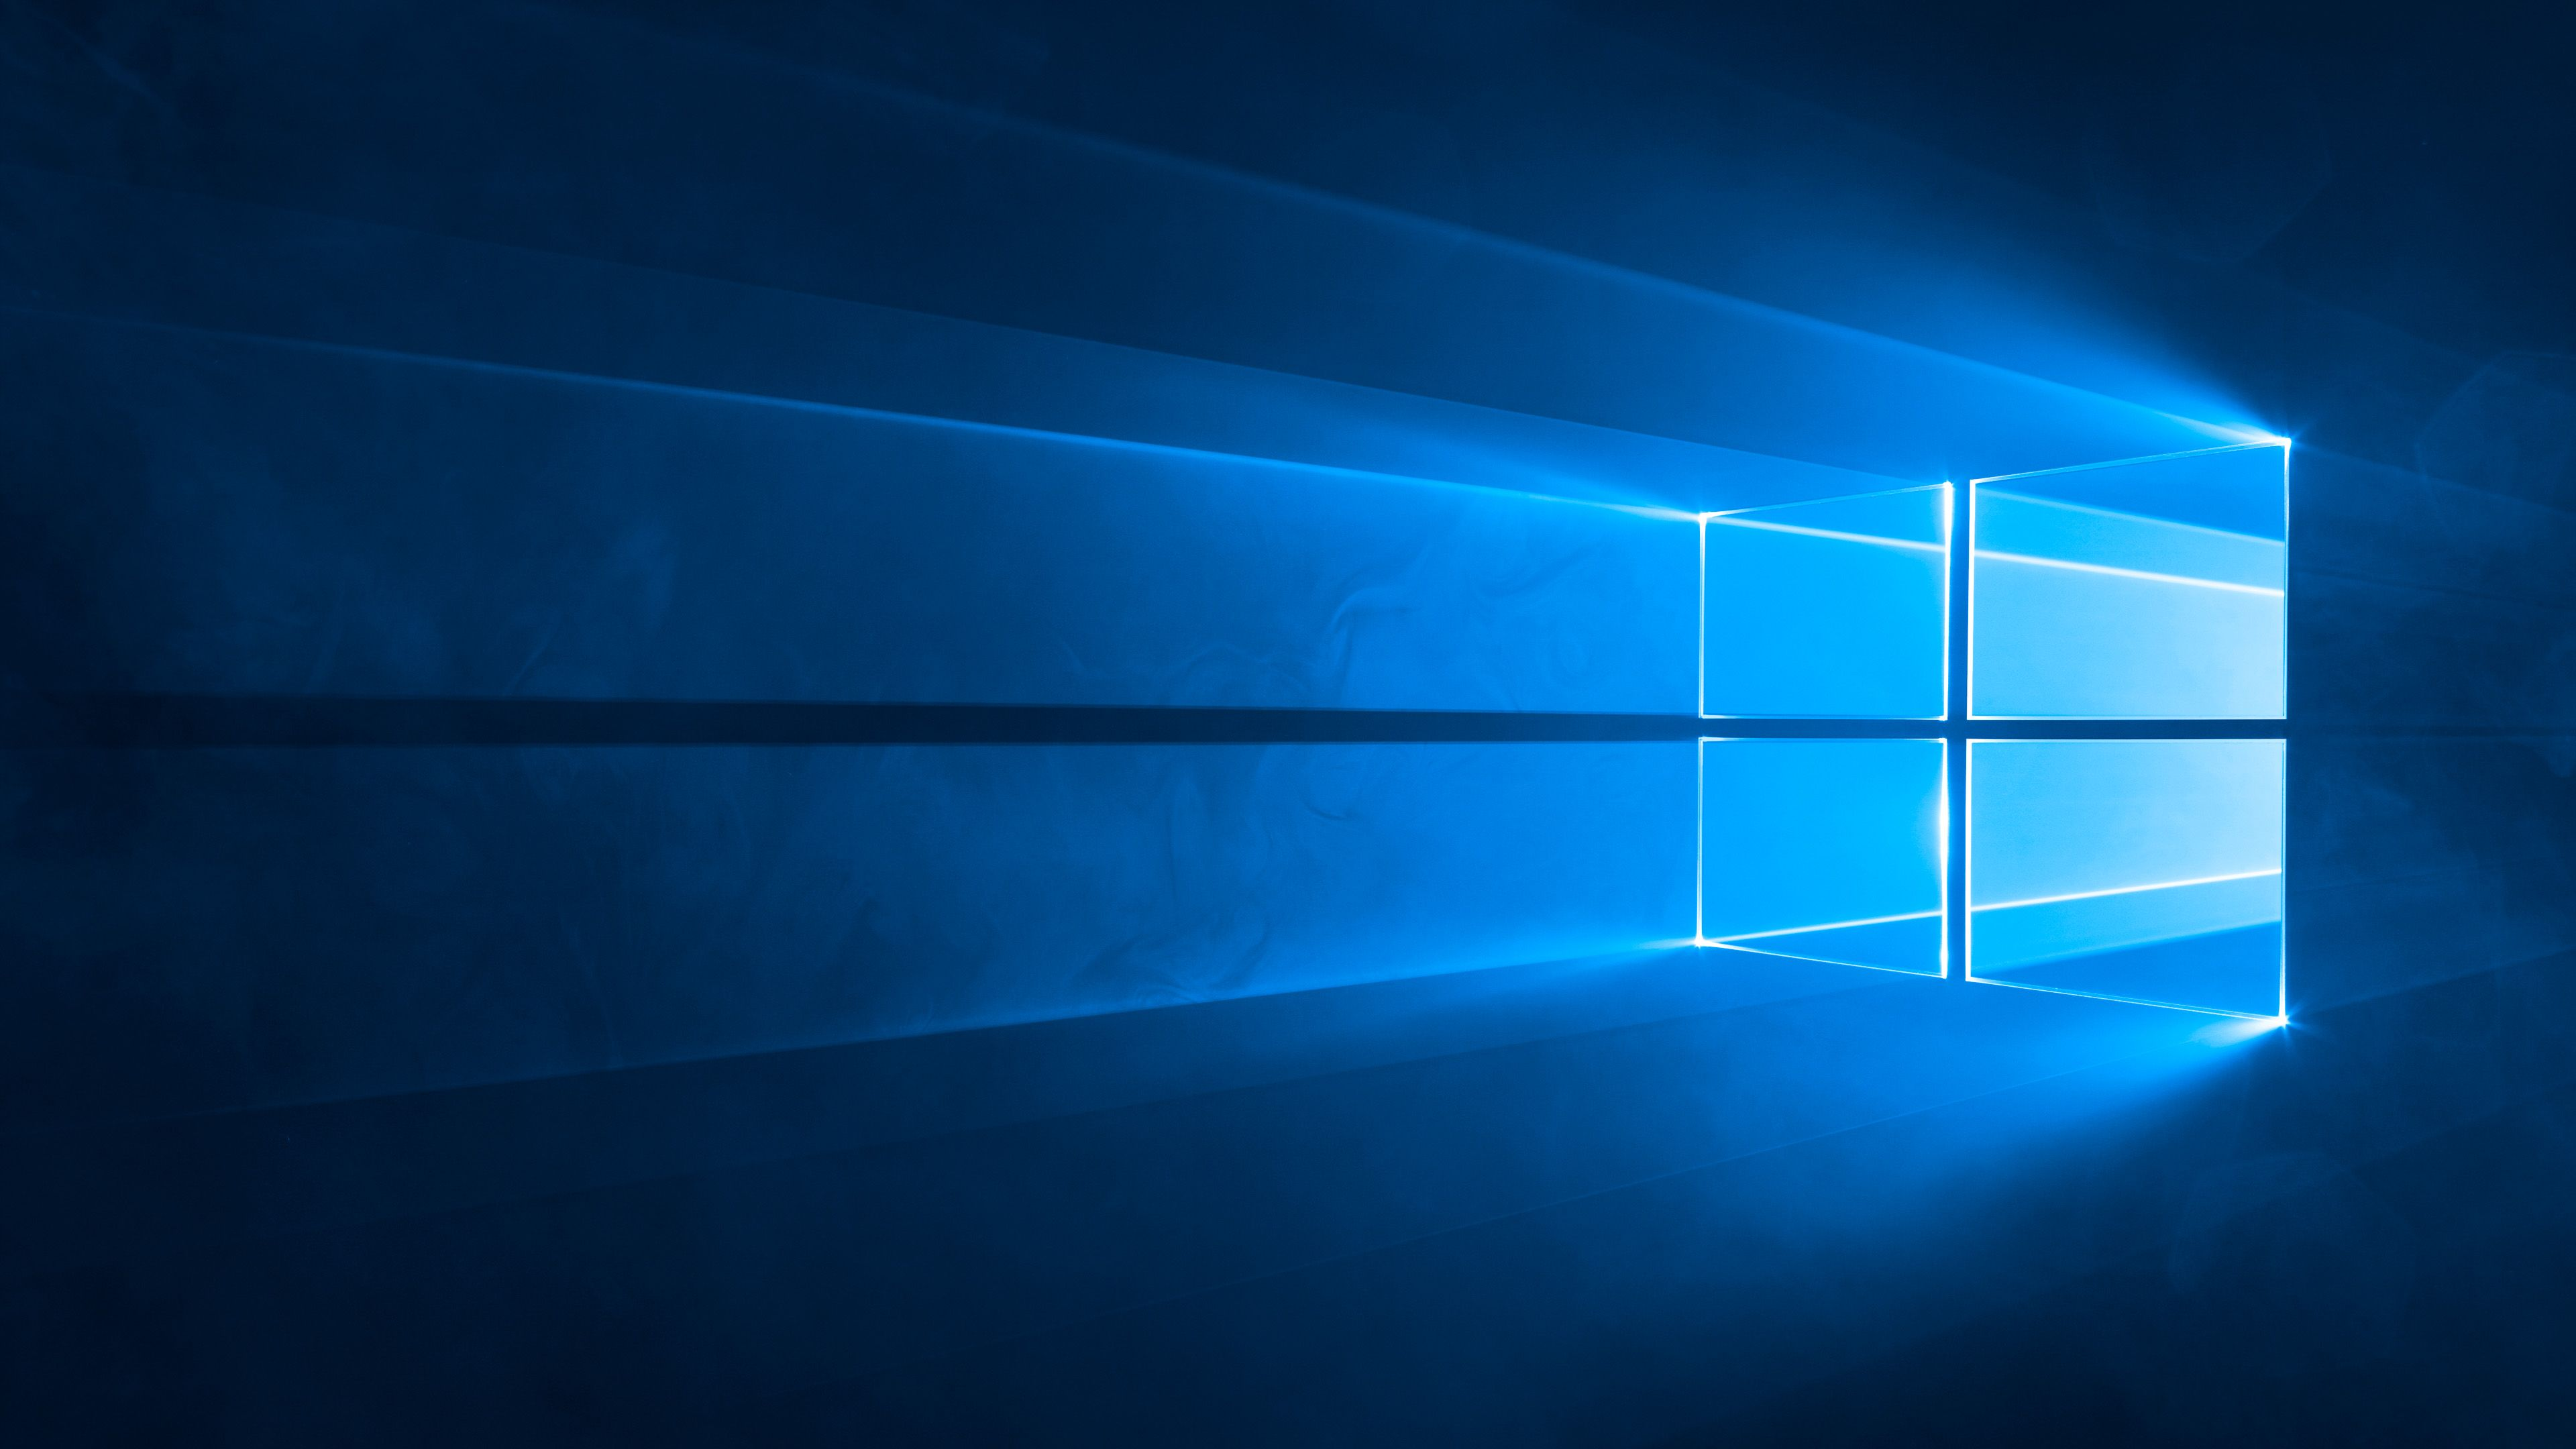 Wallpaper windows 10 black